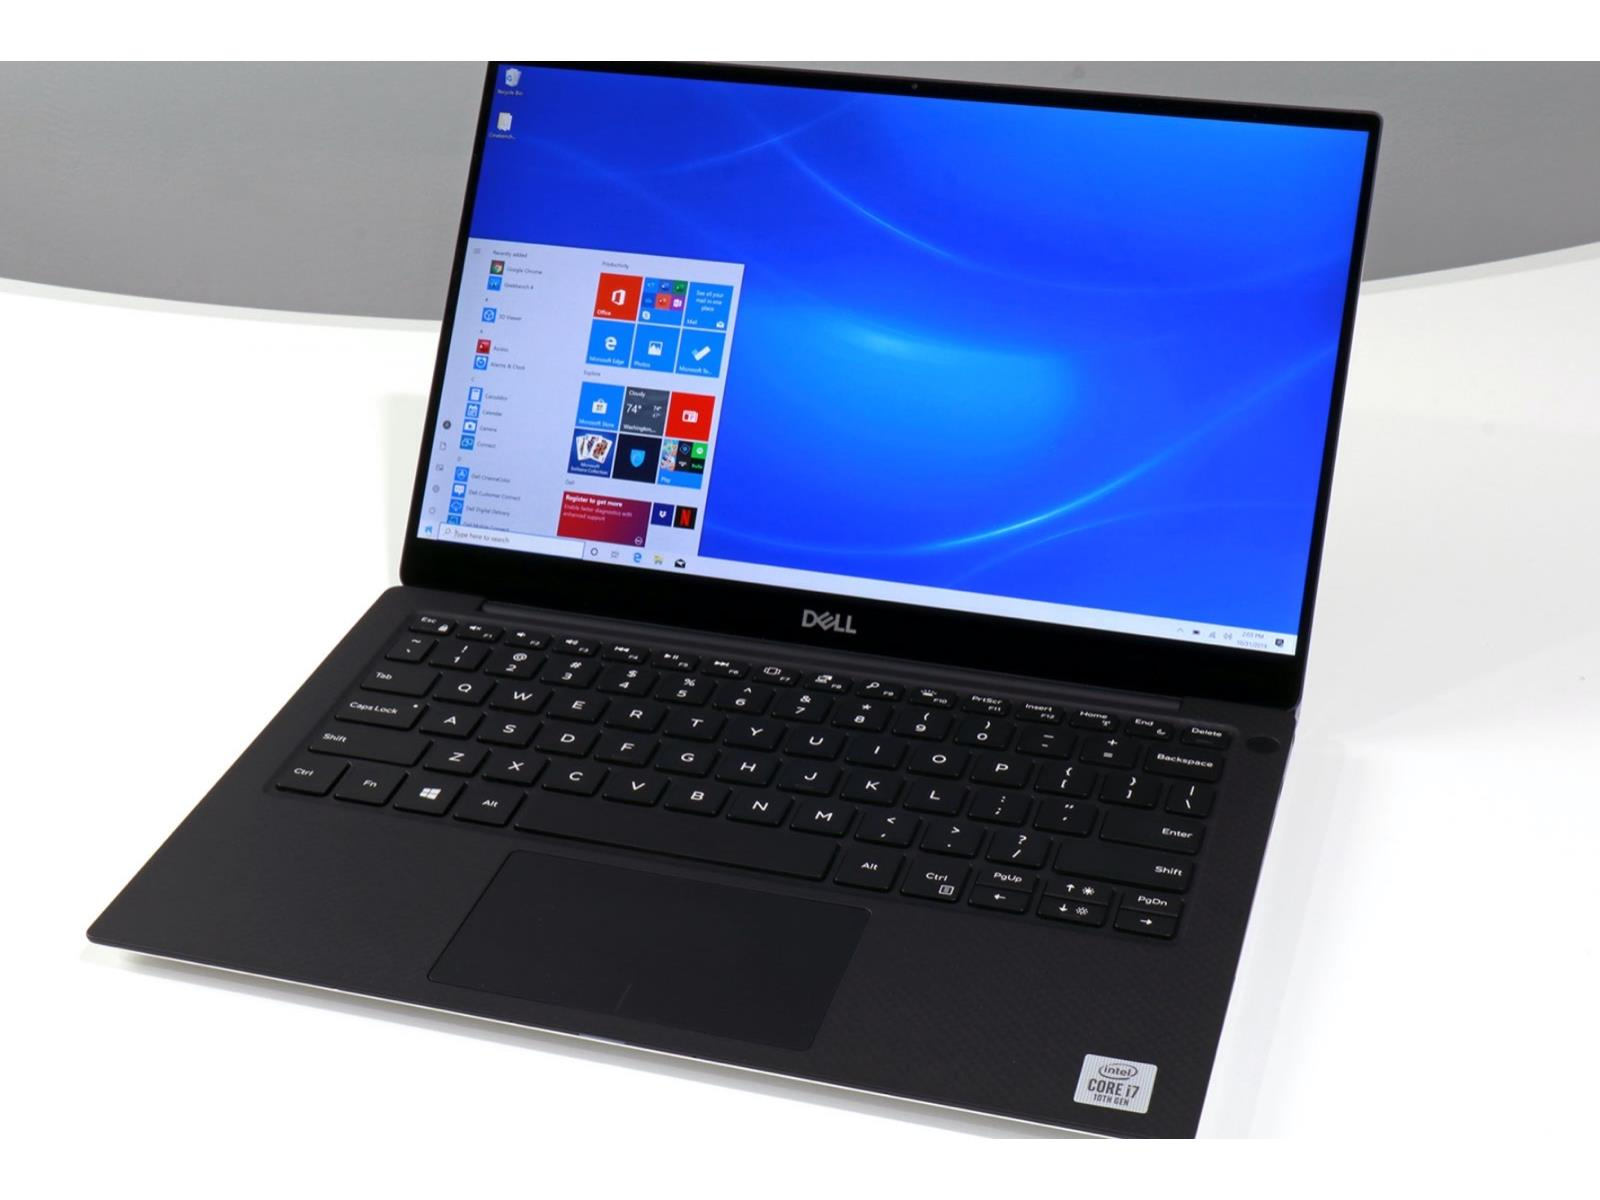 Dell Xps 13 2019 Slays Benchmarks With 6 Core 10th Gen